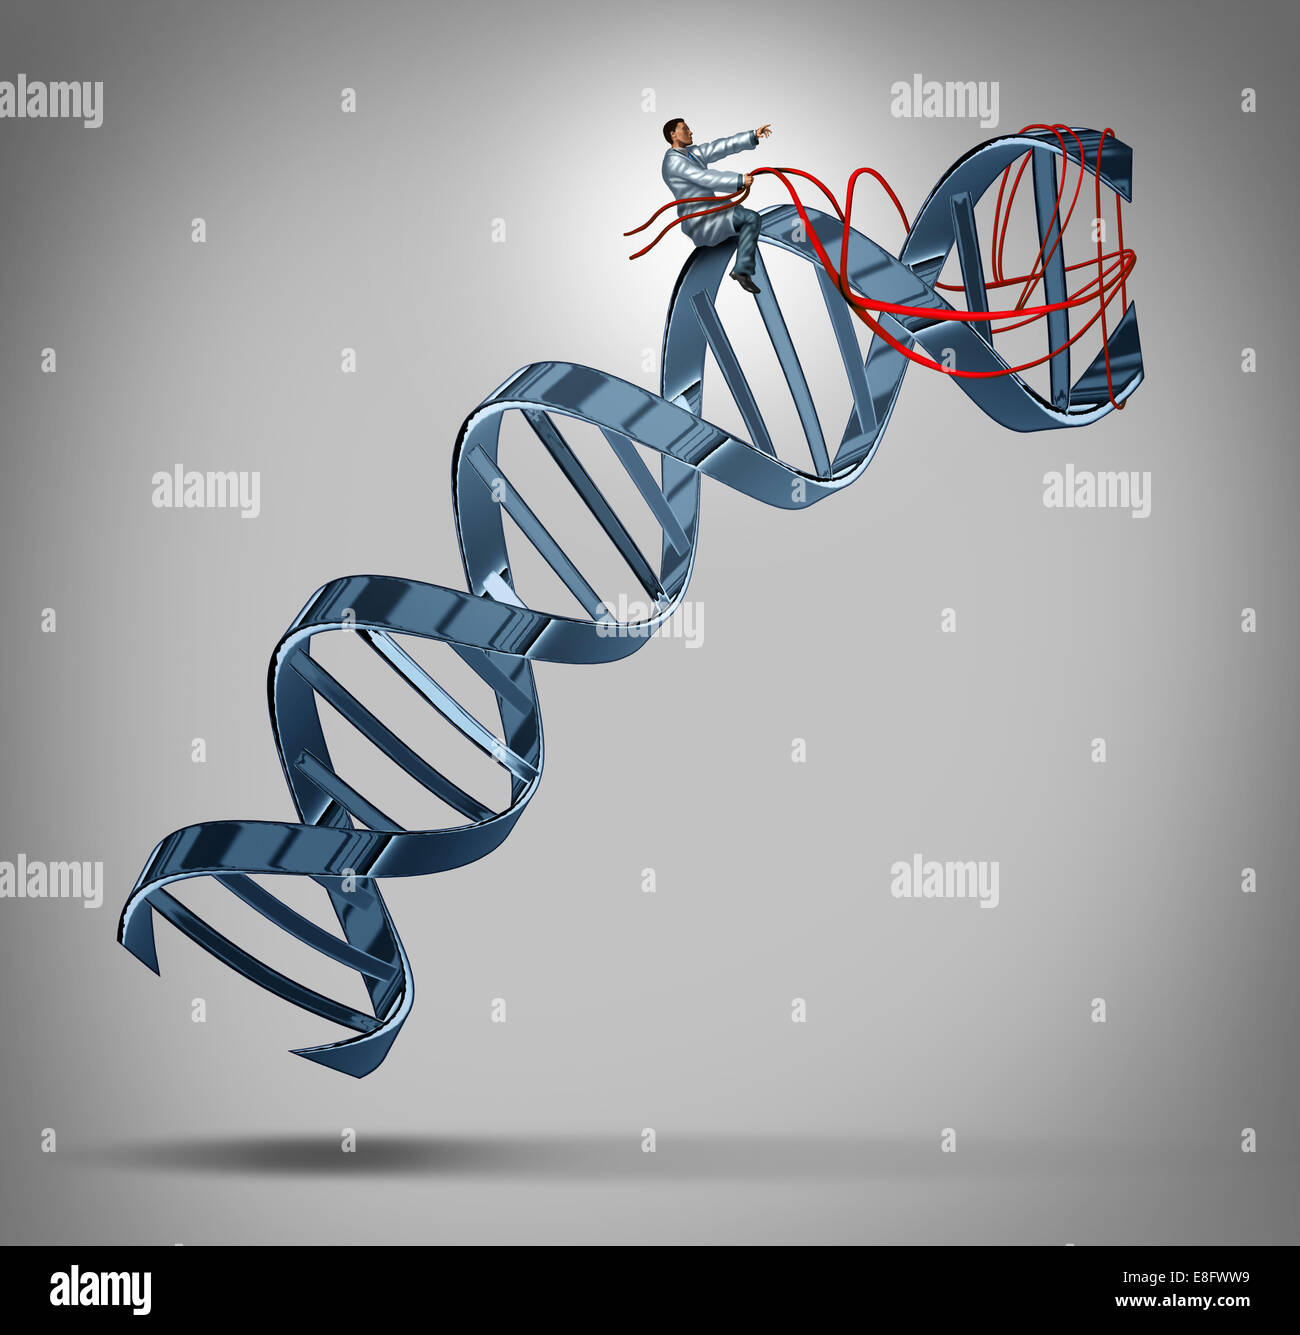 Genetic engineering and gene modification medical science concept as a doctor or researcher scientist guiding a - Stock Image